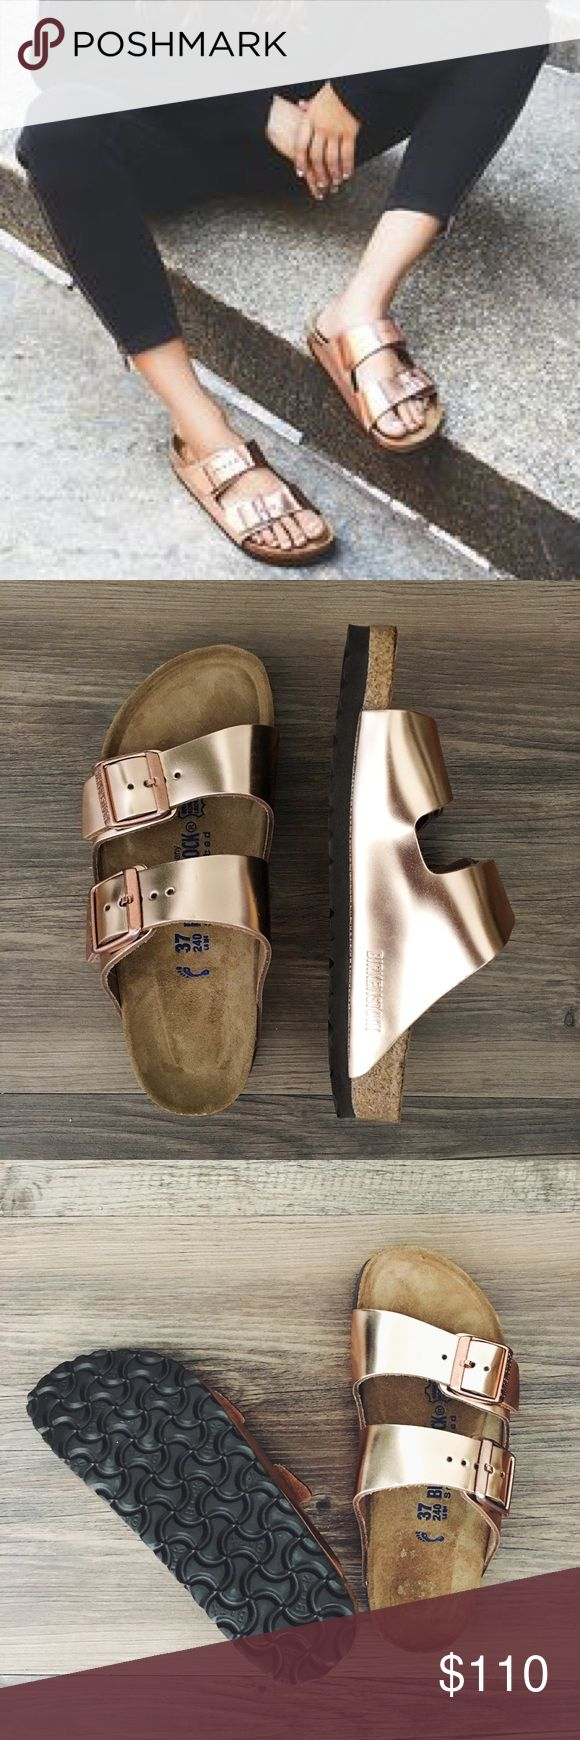 Rose gold Birkenstocks Classic Arizona fit in a GORGEOUS rose gold! Brand new with box (the box is missing the top FYI). A 37 Birk translates to a women's 6-6.5. Birkenstock Shoes